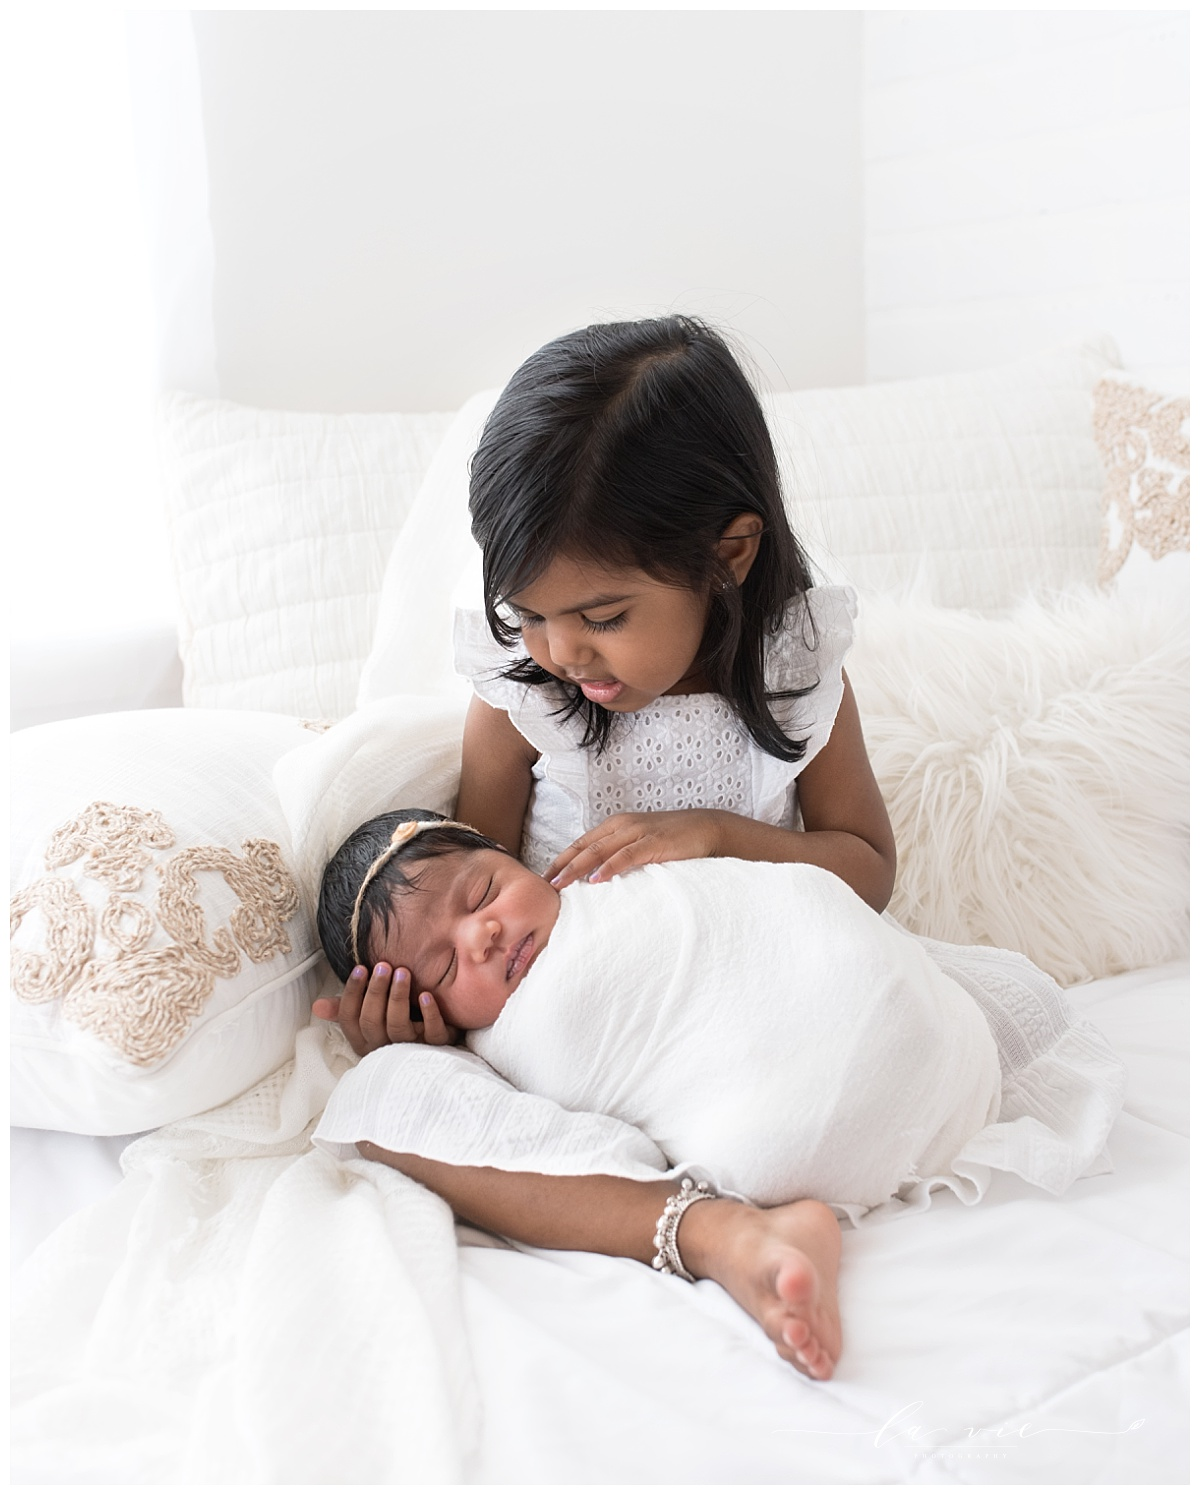 Big sister holding her newborn baby sister on white bed